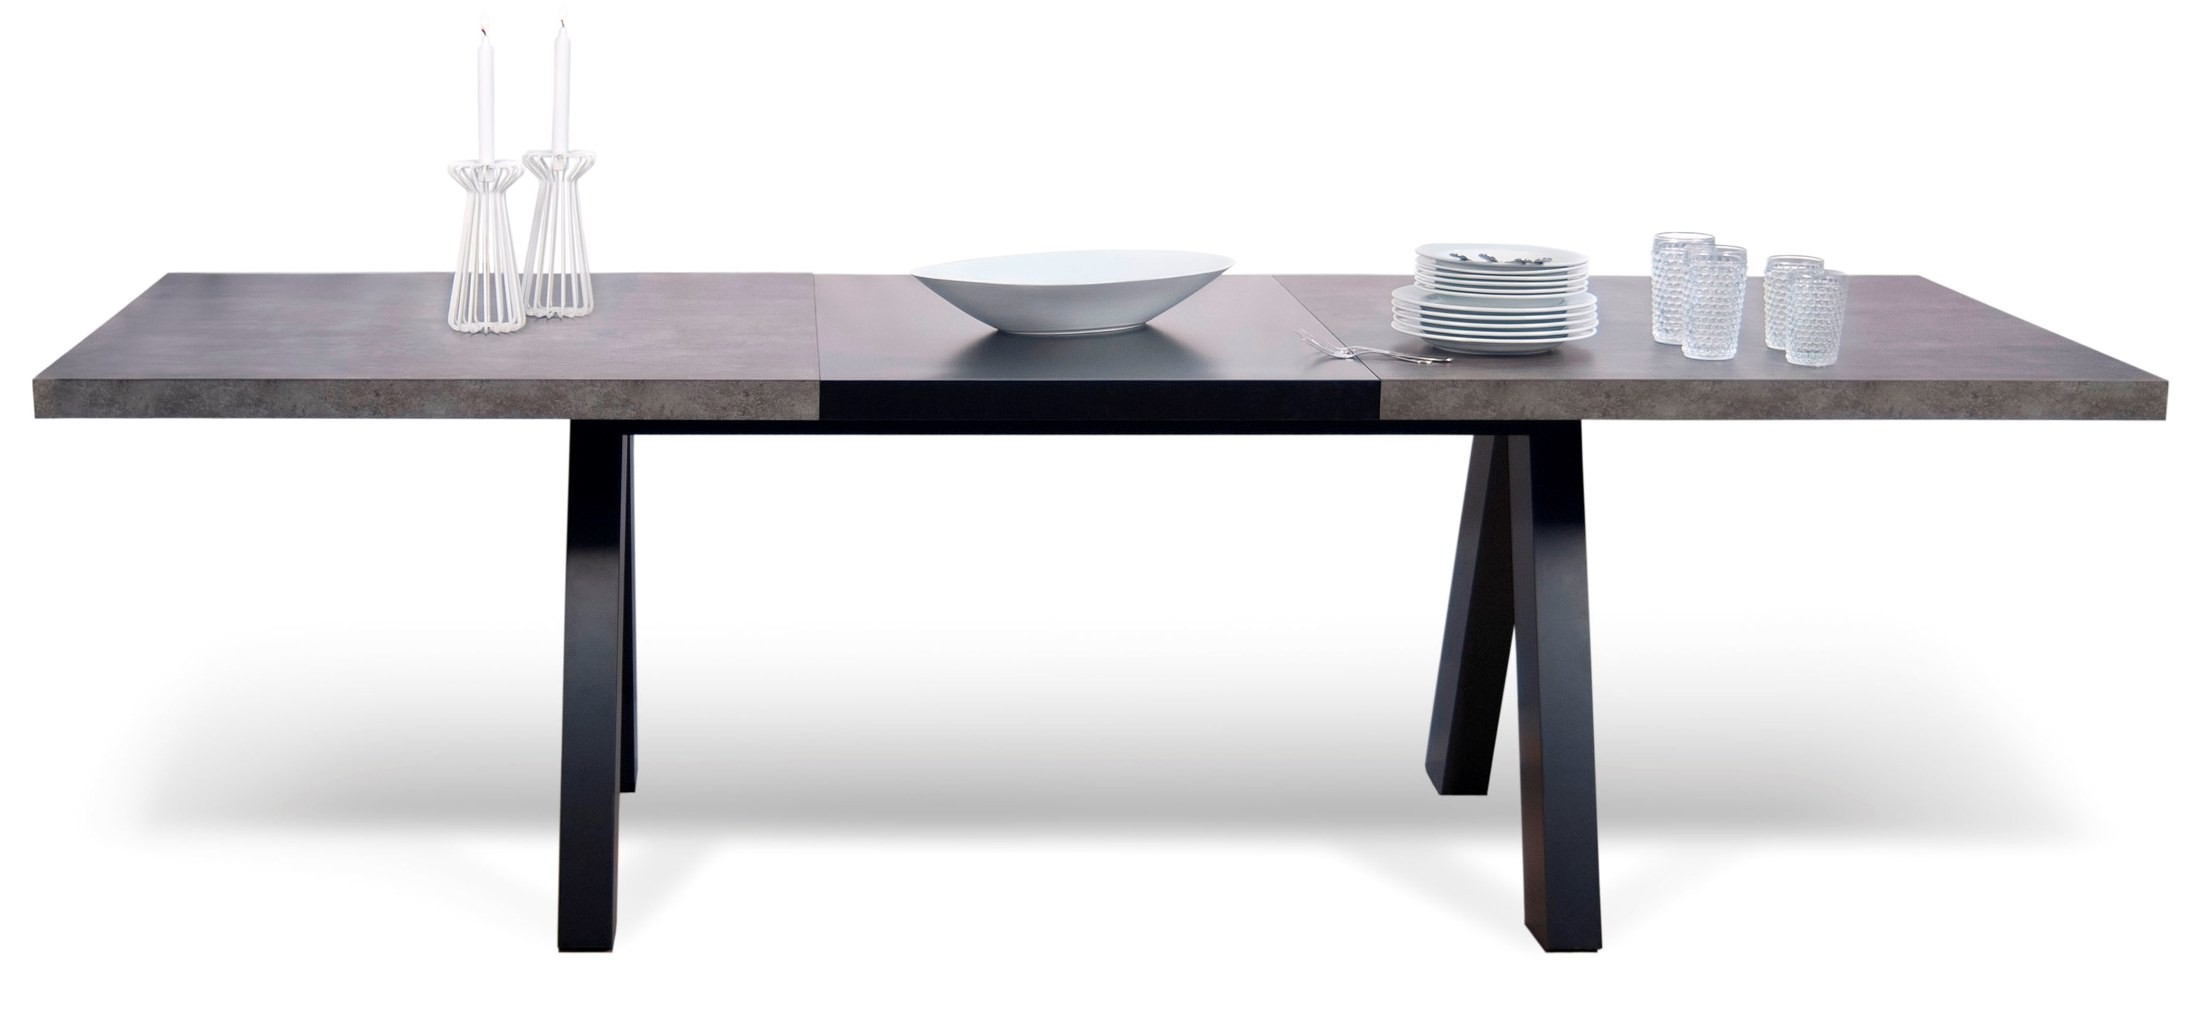 Apex Concrete Extendable Dining Work Table From Tema